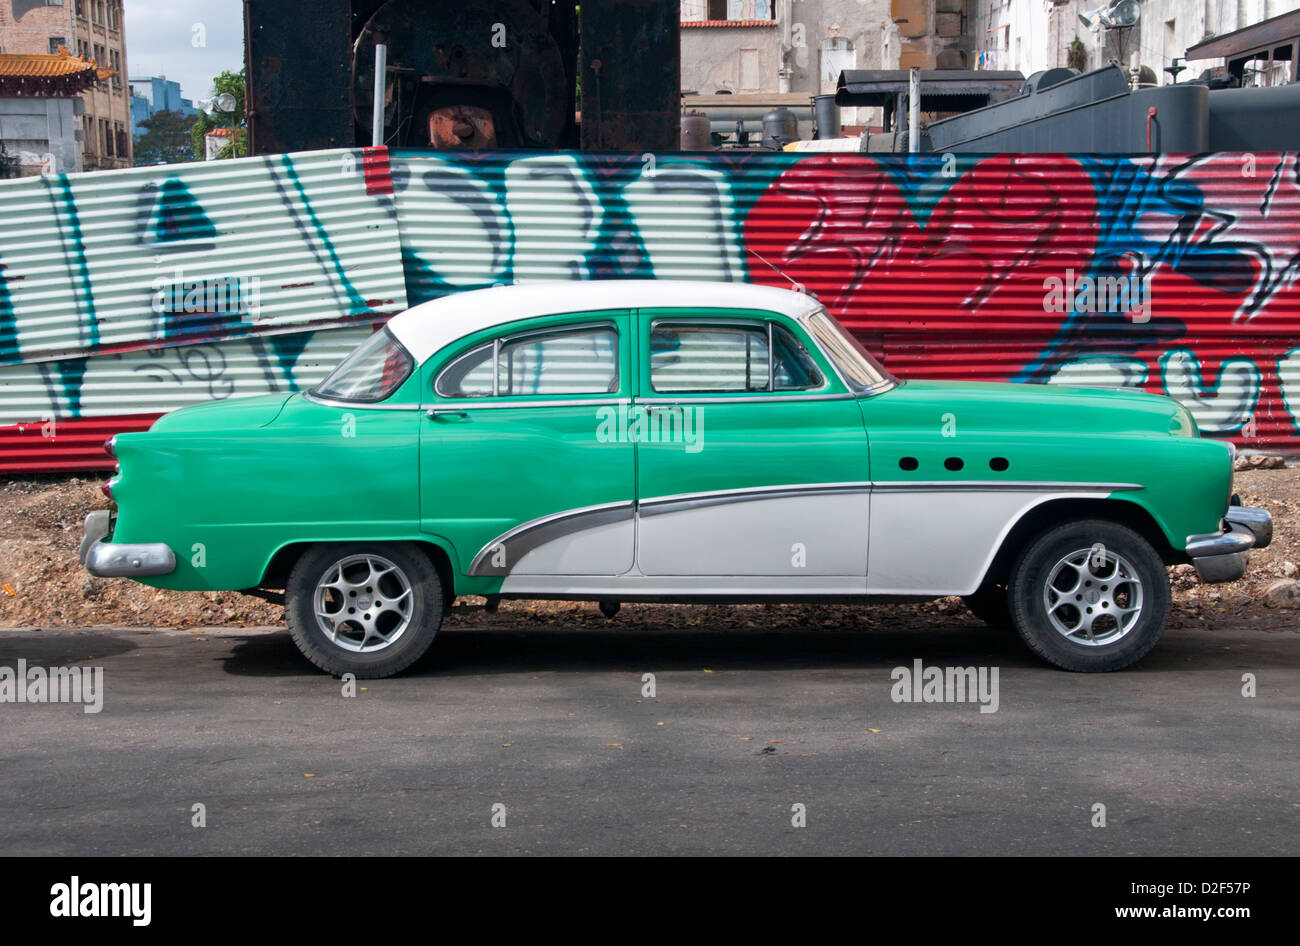 Classic American 1950's Car in front of Graffiti Wall on the Streets of Havana, Havana, Cuba - Stock Image